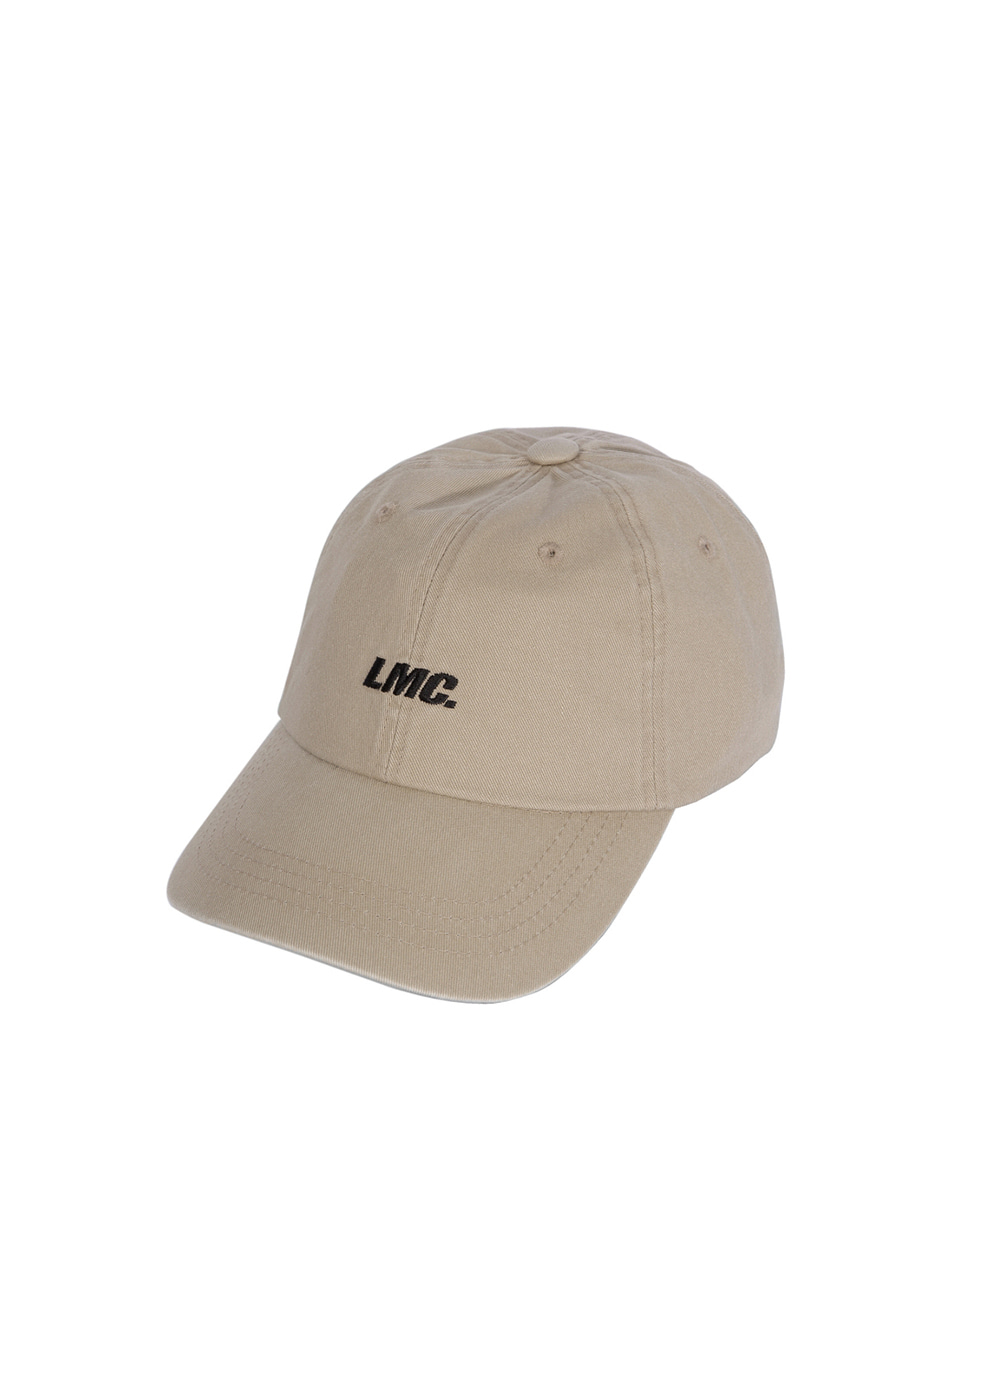 LMC ITALIC WASHED 6 PANEL CAP beige